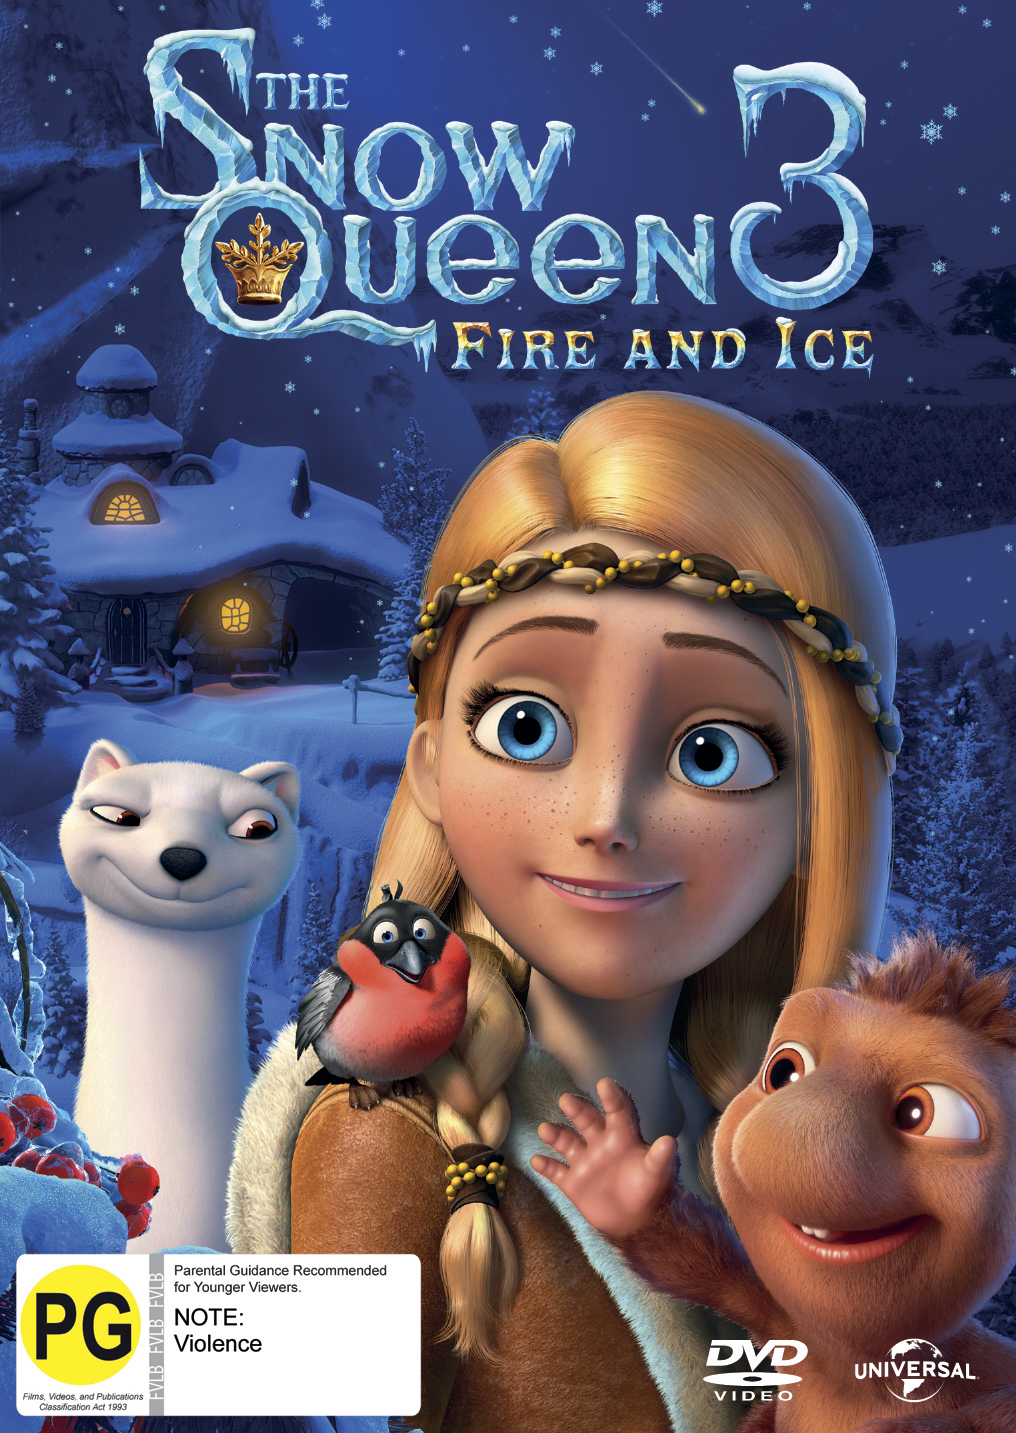 The Snow Queen 3 Dvd In Stock Buy Now At Mighty Ape Nz